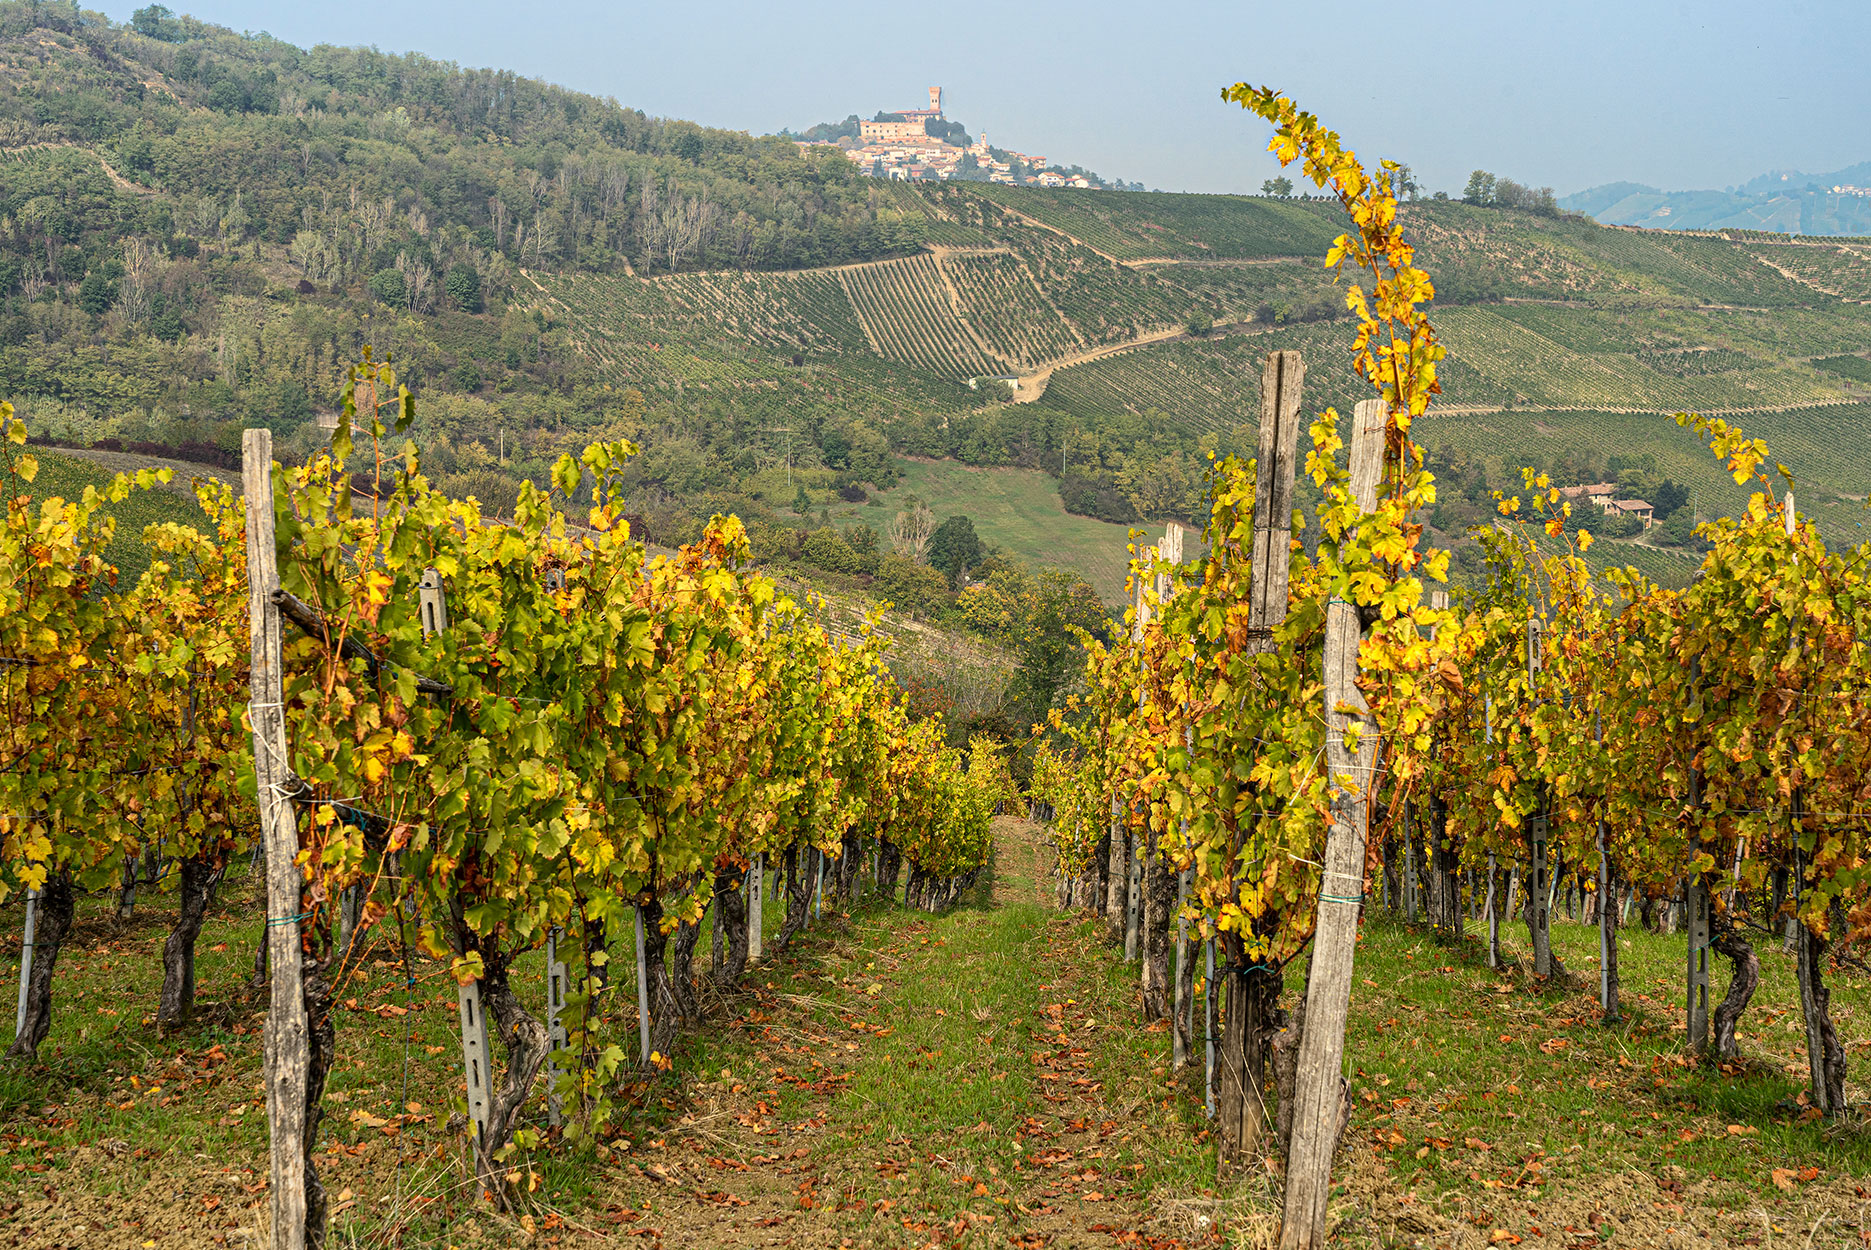 Vineyards in the Oltrepo Pavese region of Italy